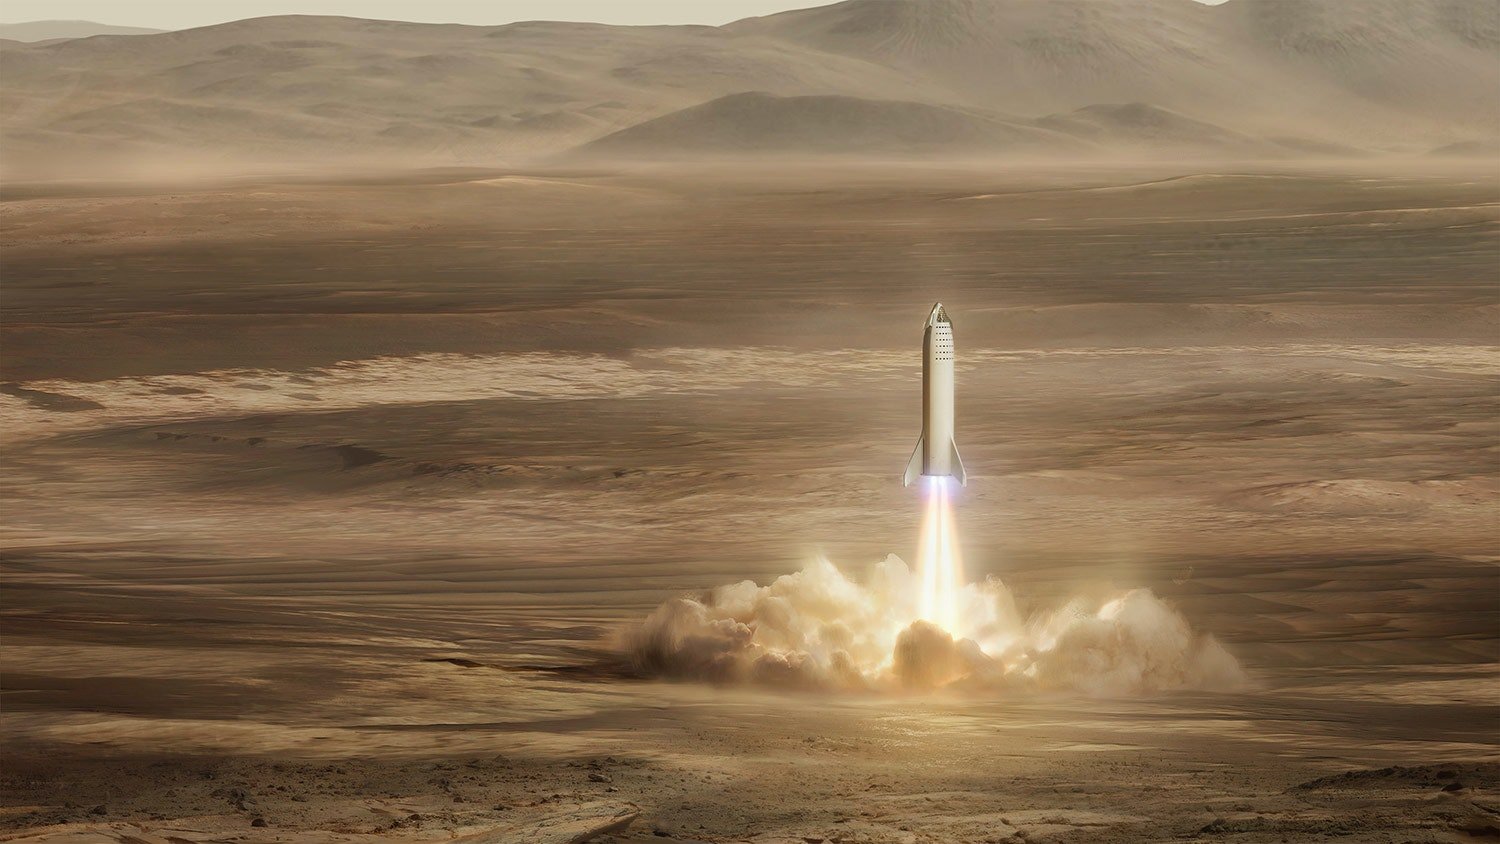 SpaceX's BFR, an earlier version of the Starship, landing on Mars. The image shows an artist concept of how the first city may look.